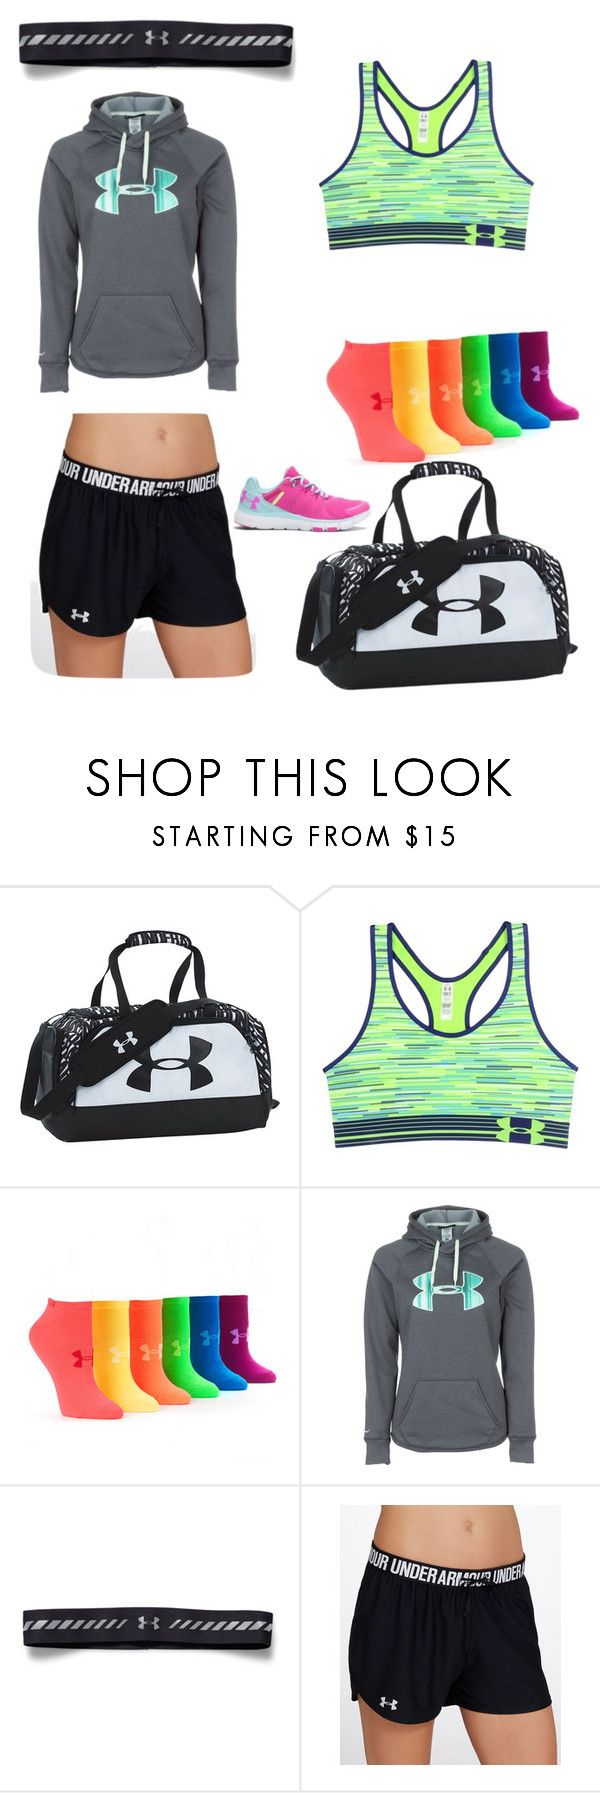 """Under amour"" by mckinley2004 ❤ liked on Polyvore featuring Under Armour"